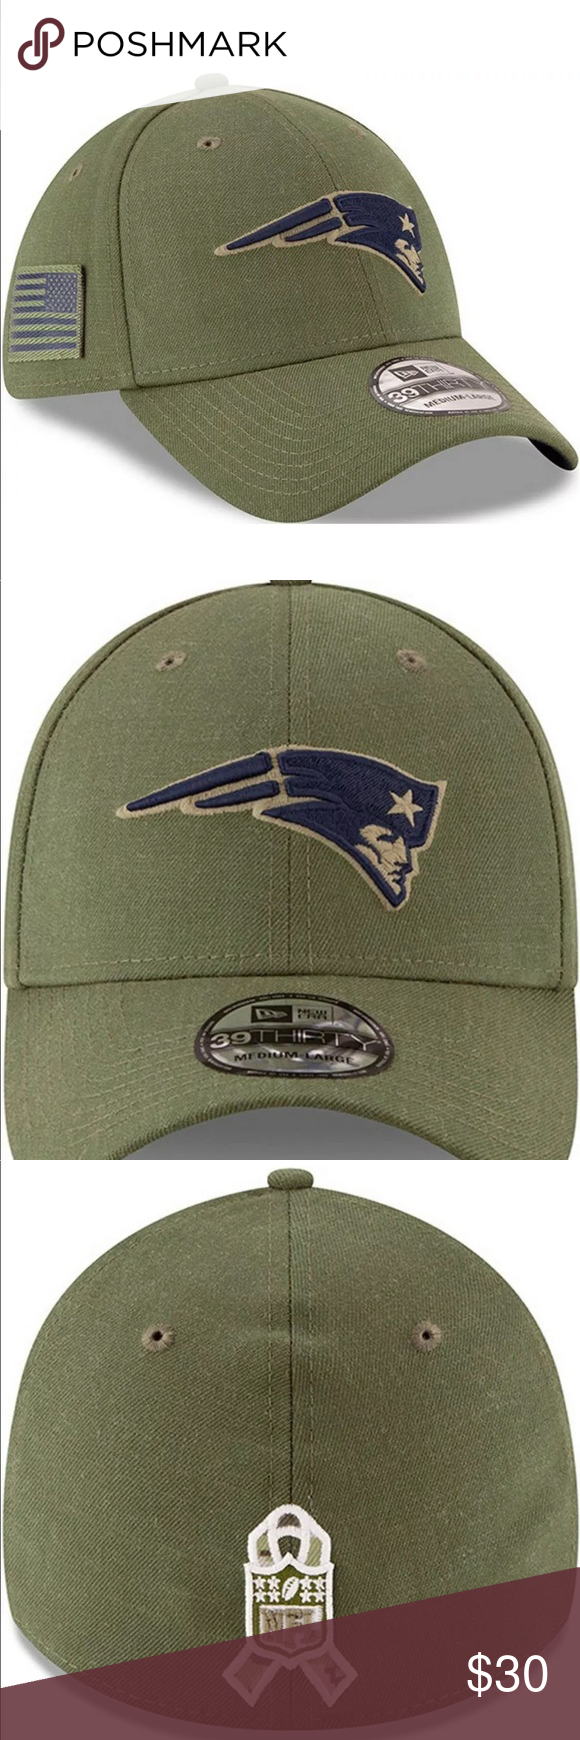 New England Patriots New Era Salute To Service SzL New England Patriots New Era 39Thirty Salute To Service Military Hat Cap L New New Era Accessories Hats #salutetoservice